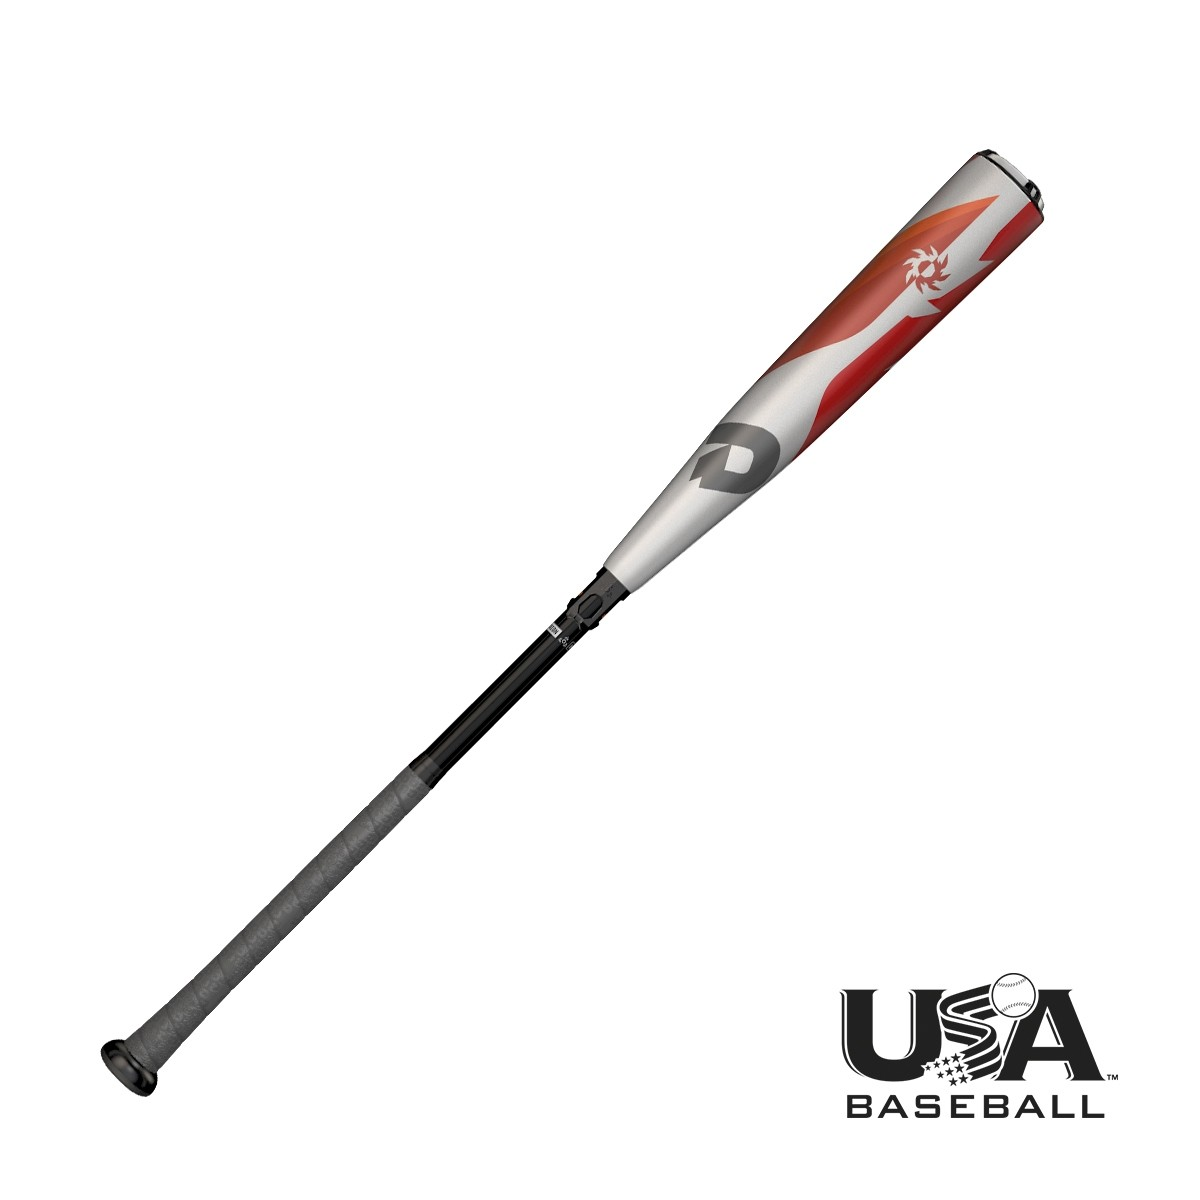 demarini-voodoo-10-2018-usa-balanced-2-5-8-baseball-bat-31-inch-21-oz WTDXUD22131-18  887768610654 Following along with the new usa baseball standards the newest line